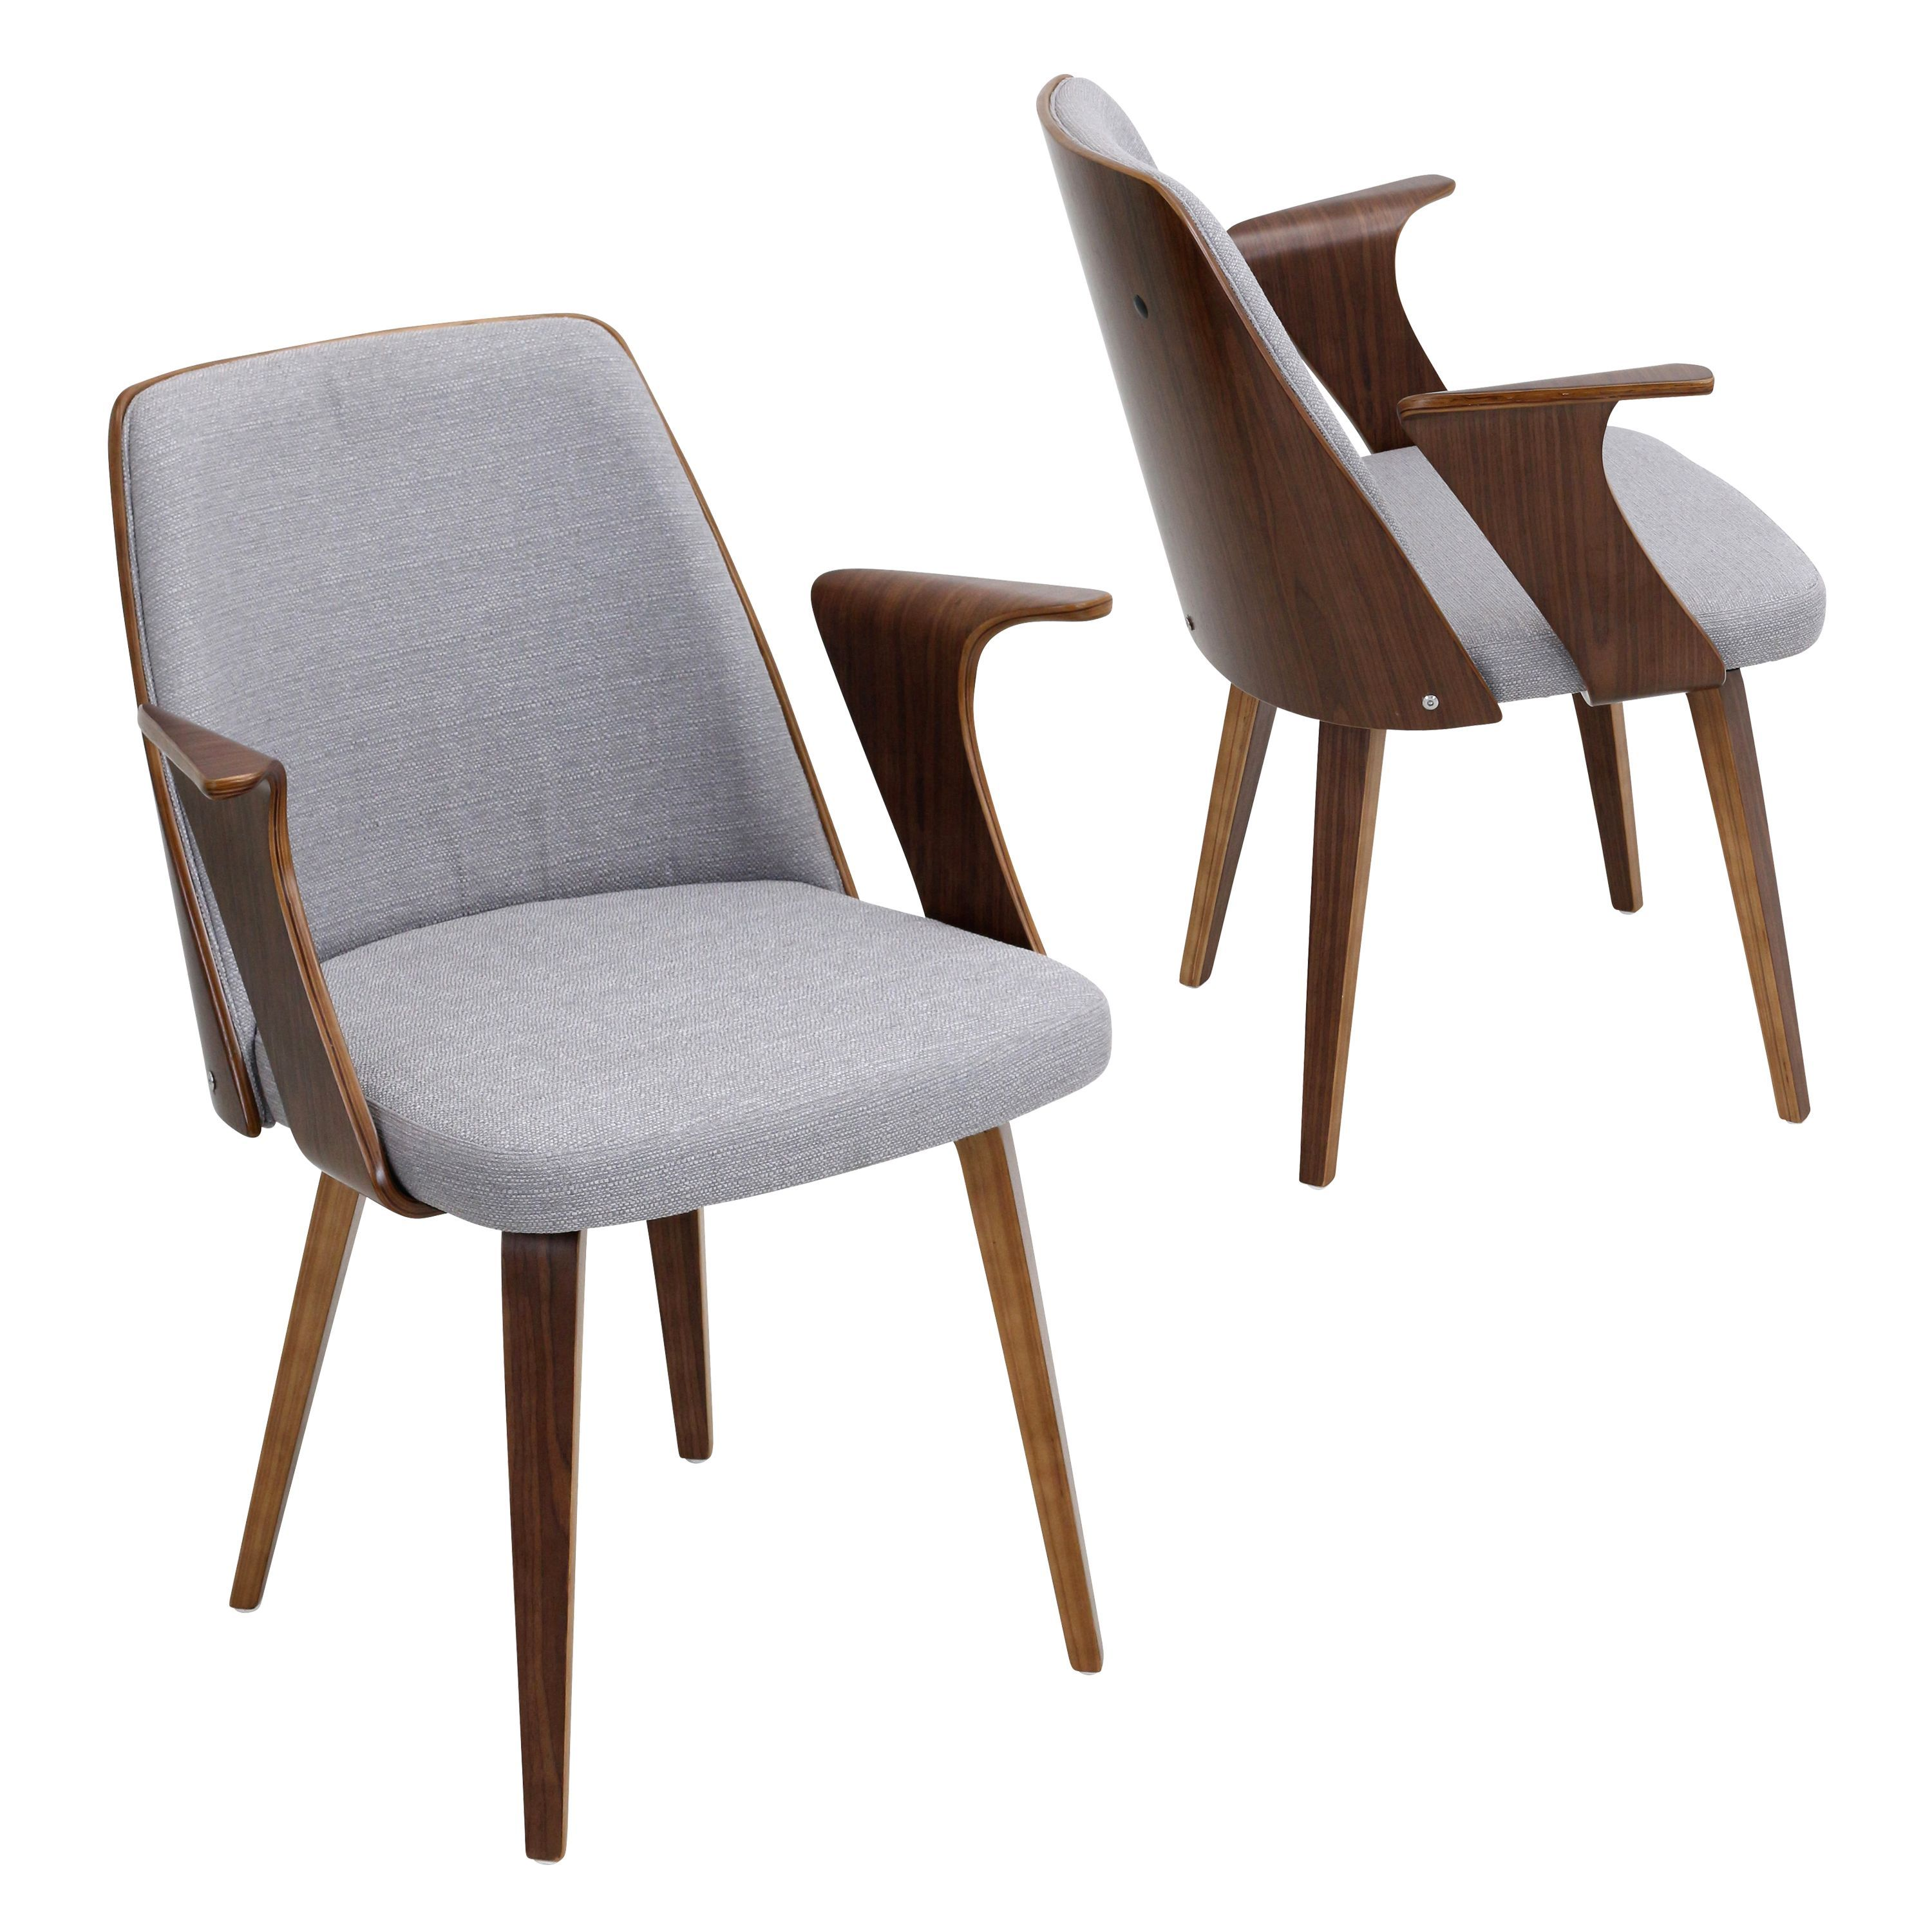 LumiSource Verdana Mid Century Modern Chair in Walnut Wood Grey